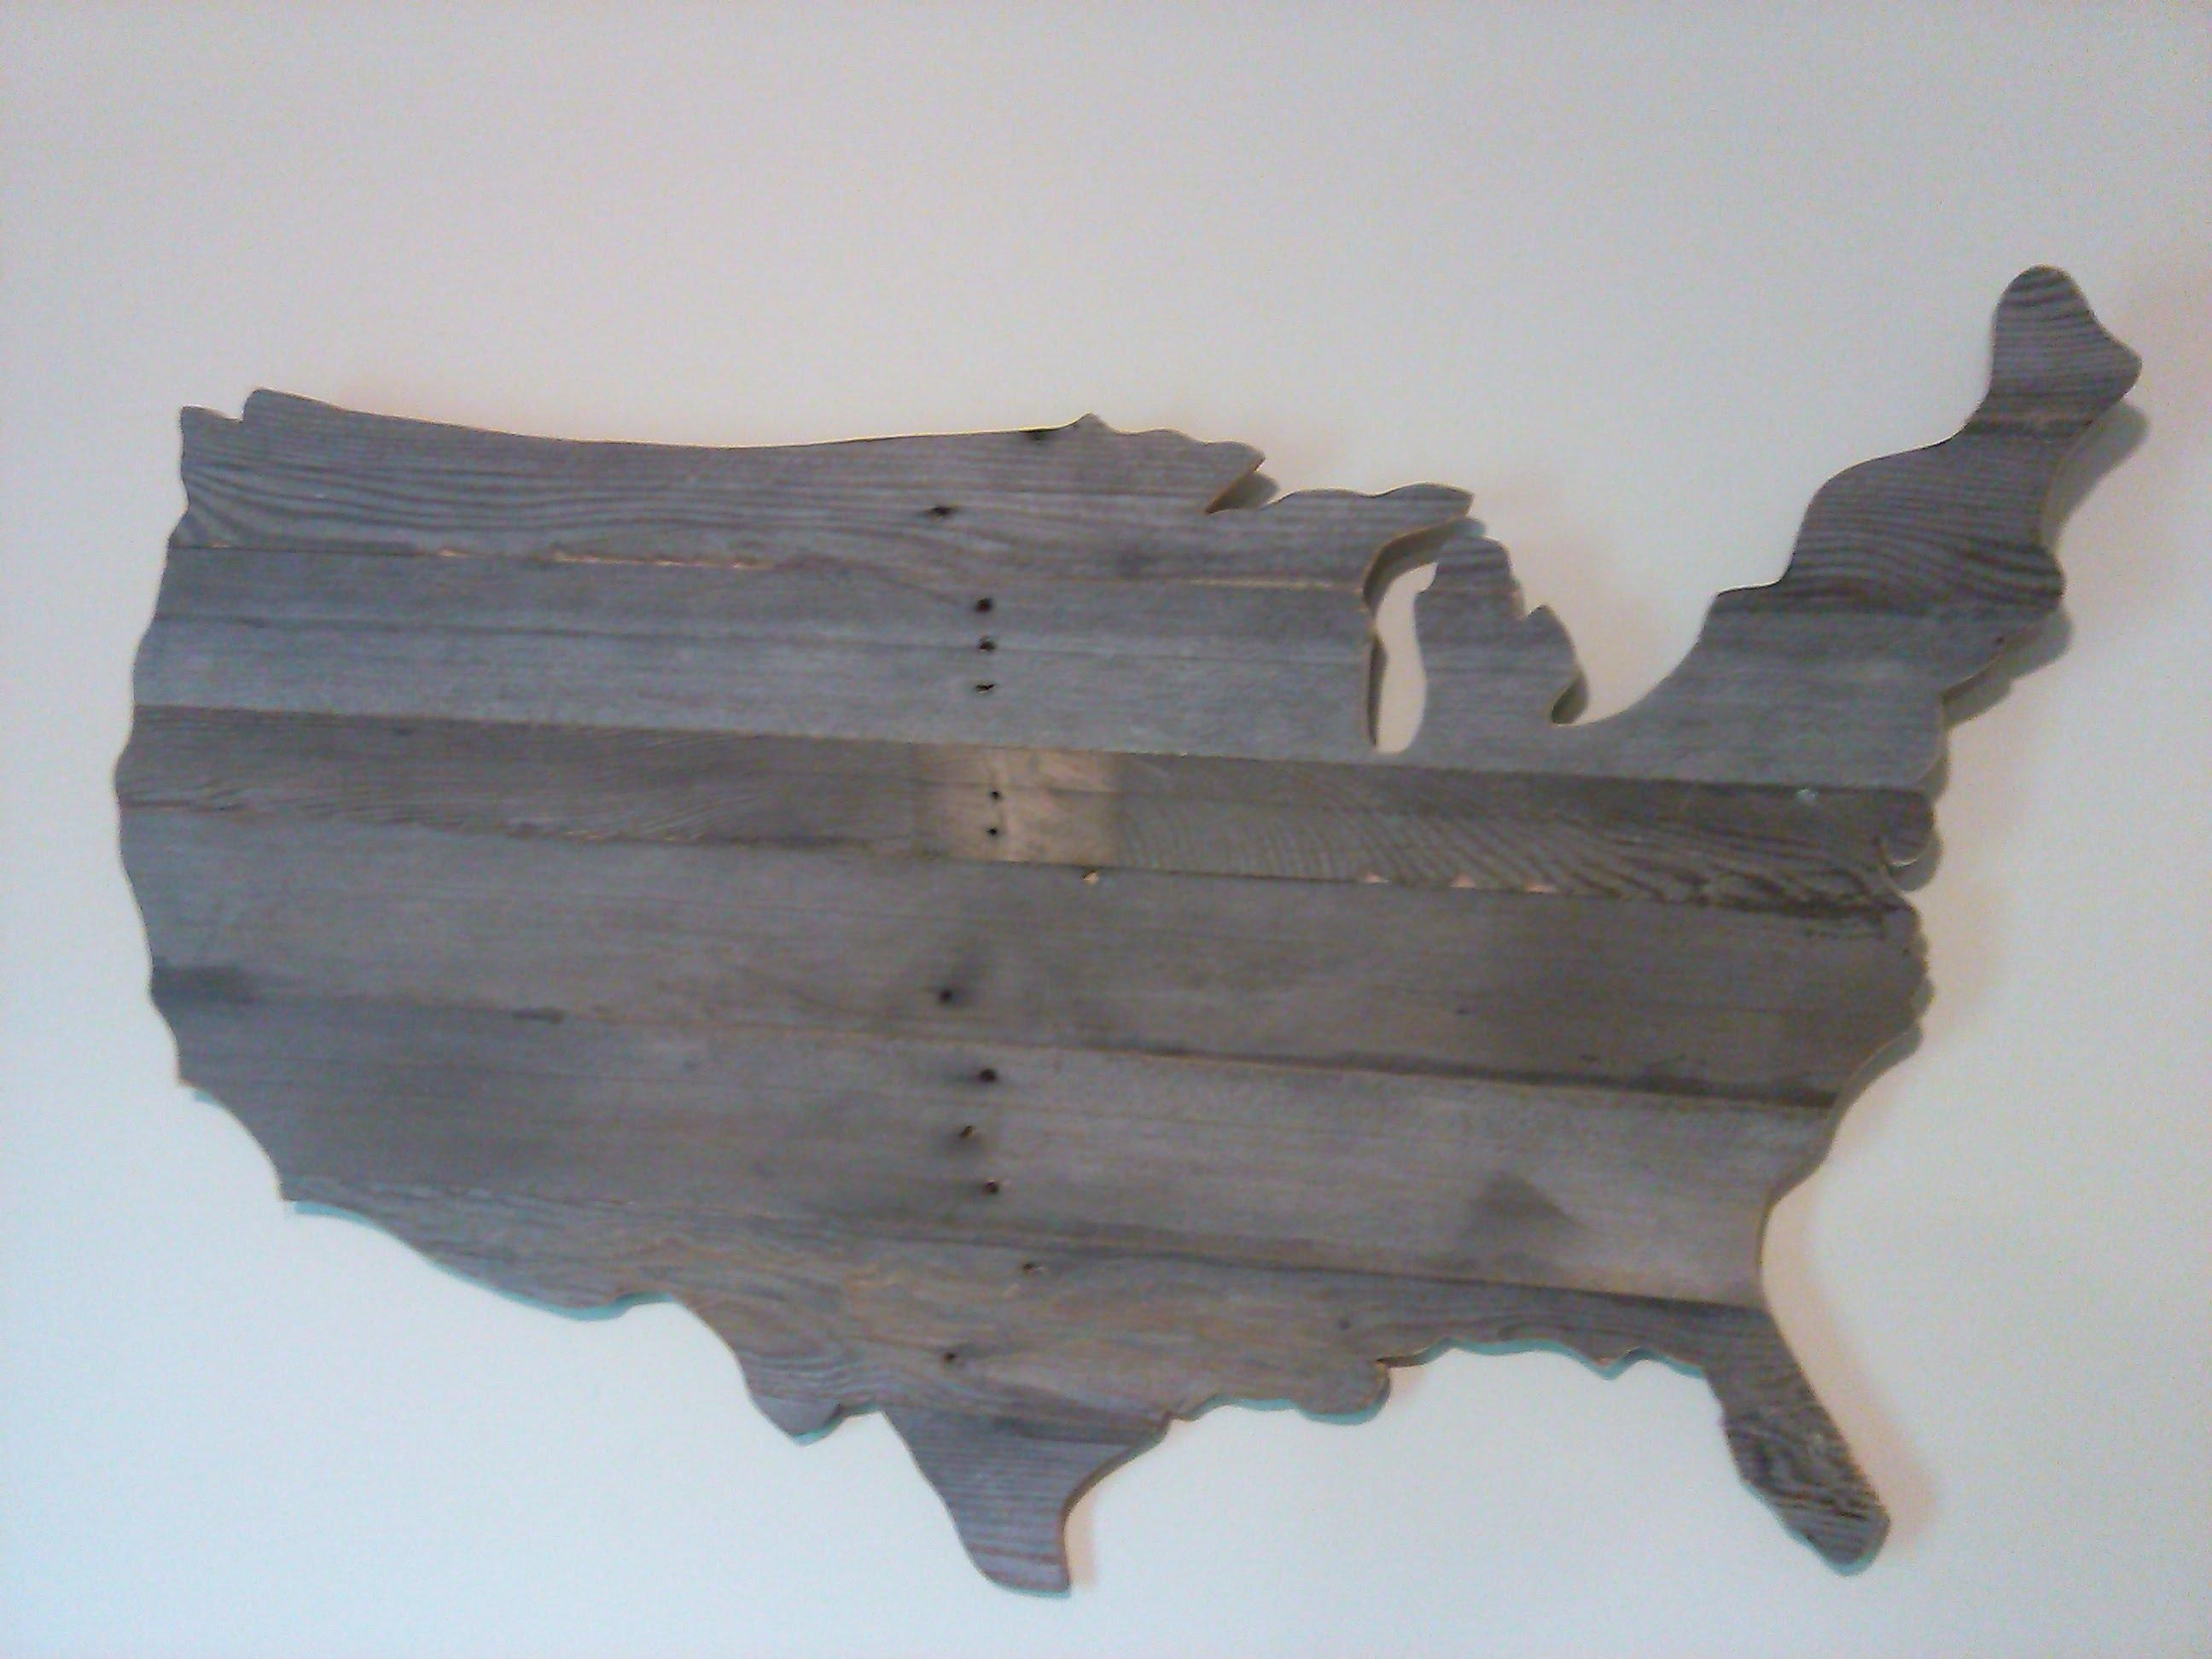 Wall art ideas wooden world map wall art explore 15 of 20 photos how to make a wooden usa map wall art out of pallets youtube inside wooden gumiabroncs Images